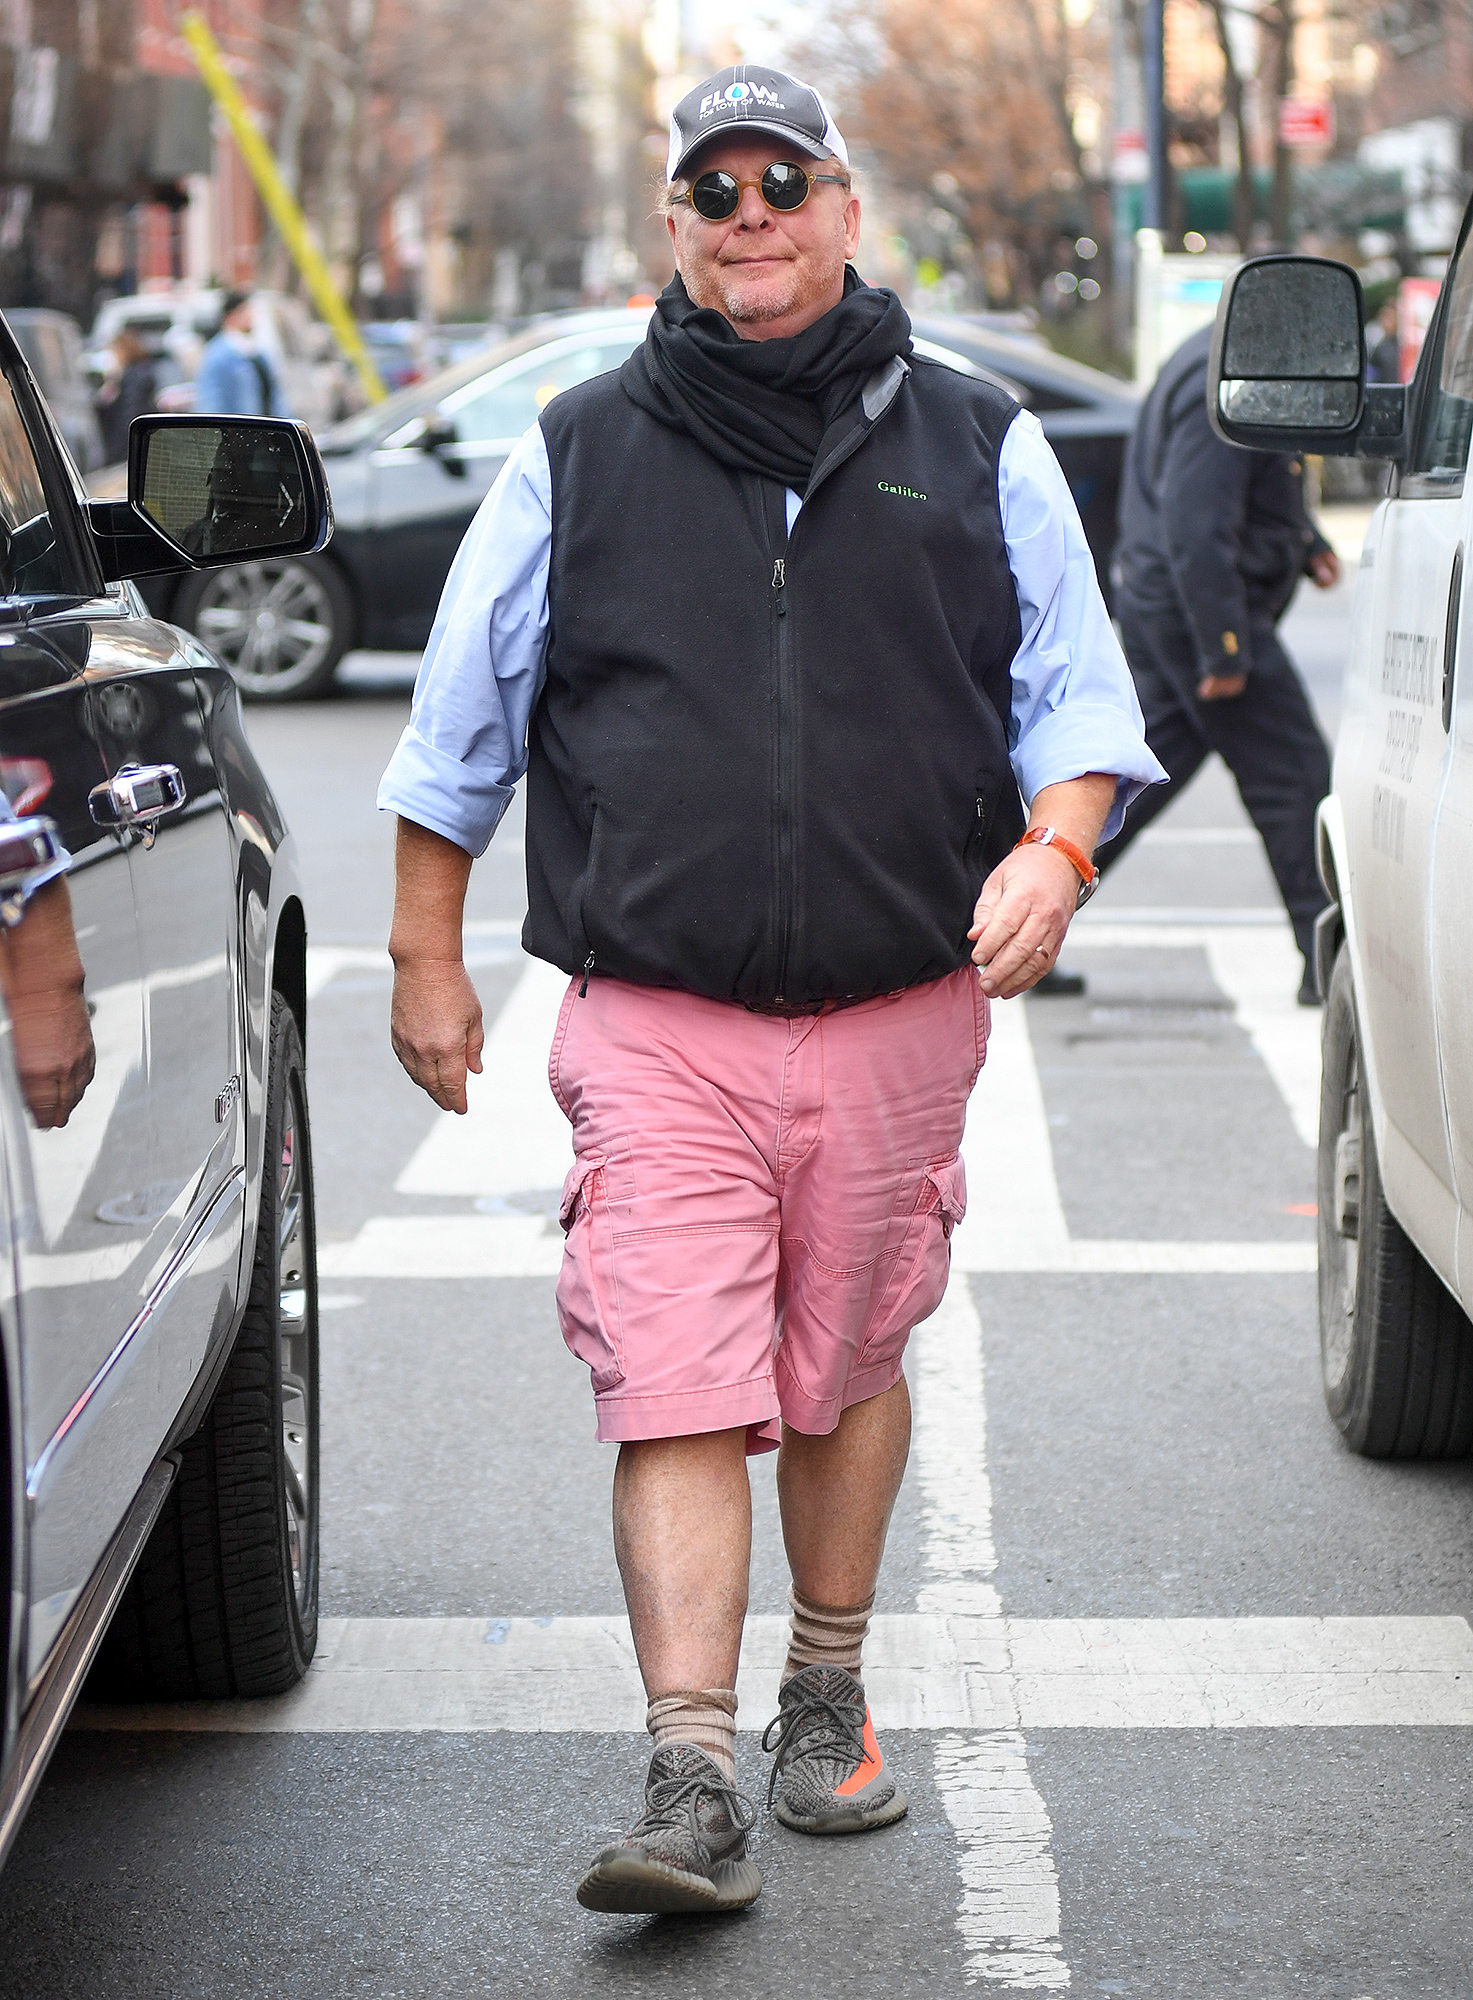 EXCLUSIVE: **NO ONLINE USE UNTIL 3:00AM ET December 21, 2017** NO NY PAPERS Mario Batali spotted for the fist time all smiles while heading for lunch this morning amid allegations of harassing woman